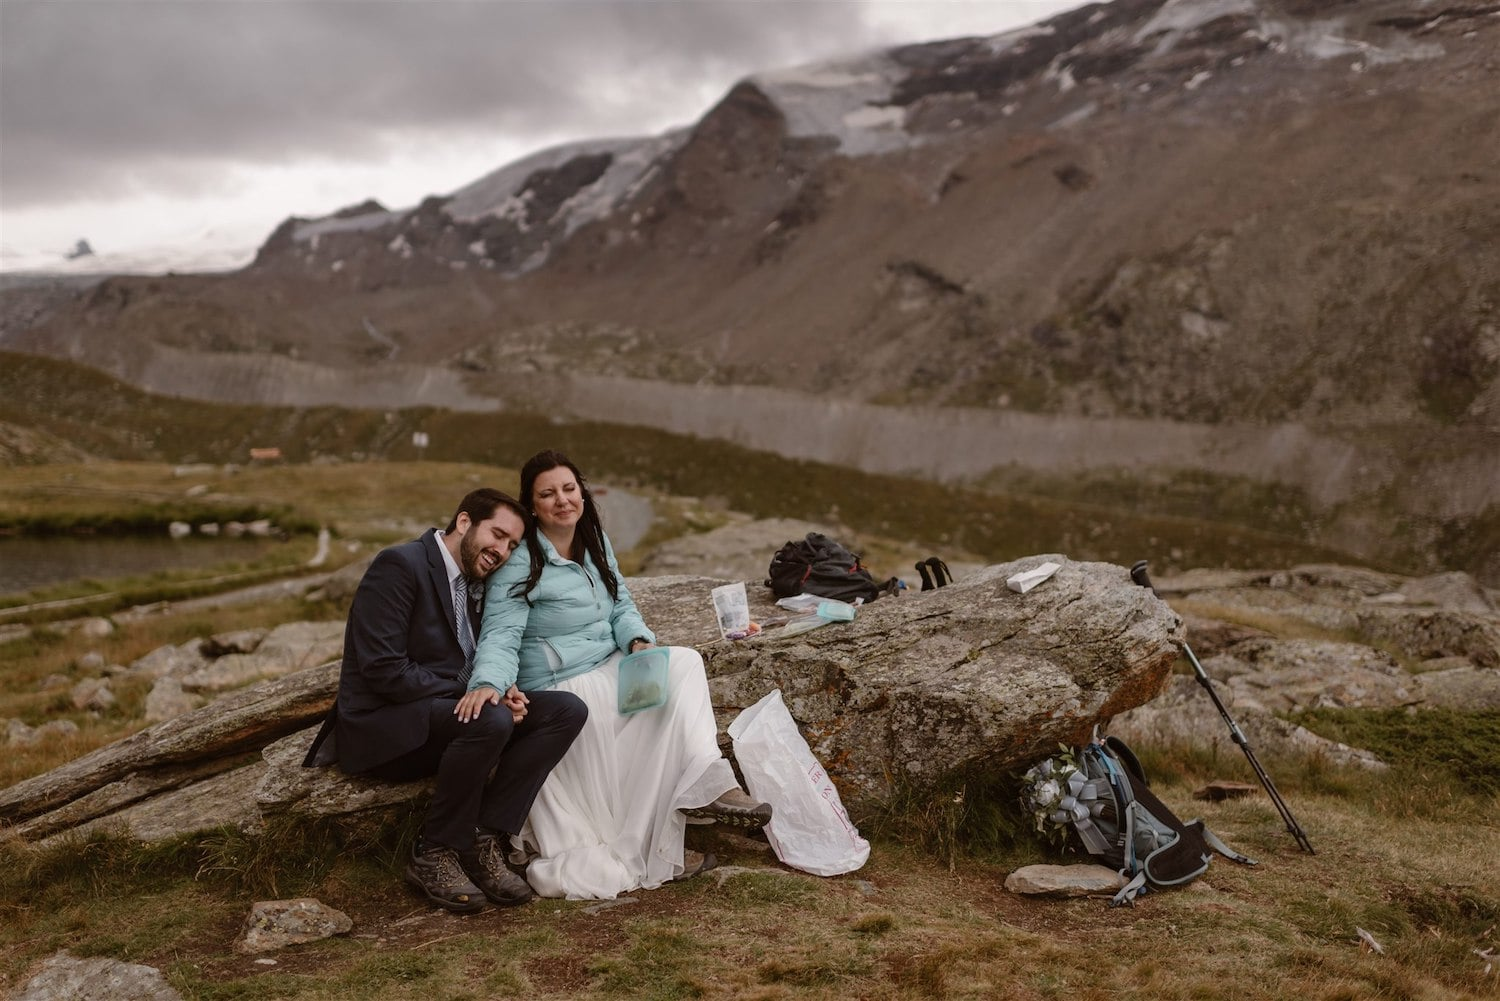 Newlyweds having picnic after their elopement ceremony in Zermatt